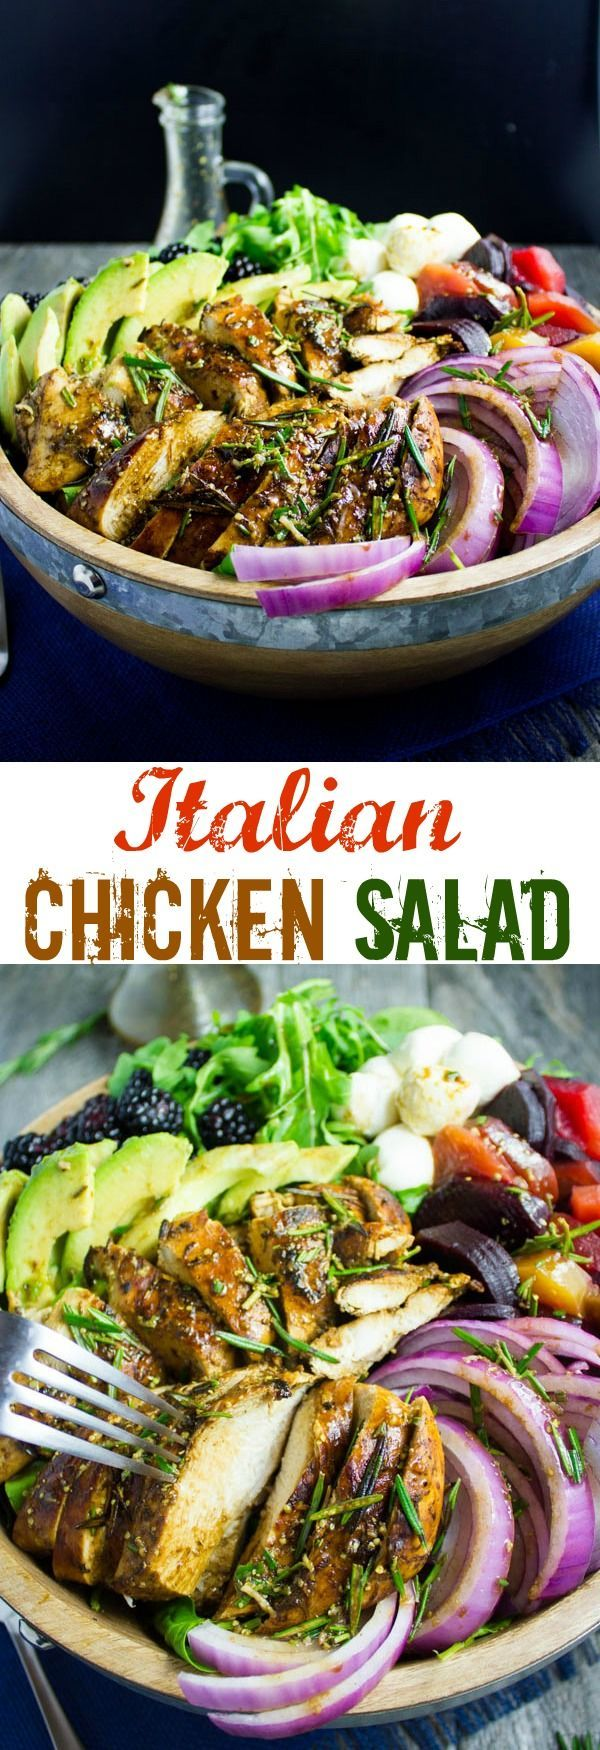 Italian Balsamic Chicken Salad Recipe. Cooking for one, two or a crowd--this easy and quick, super delicious and filling salad is all you need! Dressed with a Blackberry Balsamic Vinaigrette that pops up the flavors. Get this recipe today! http://www.twopurplefigs.com